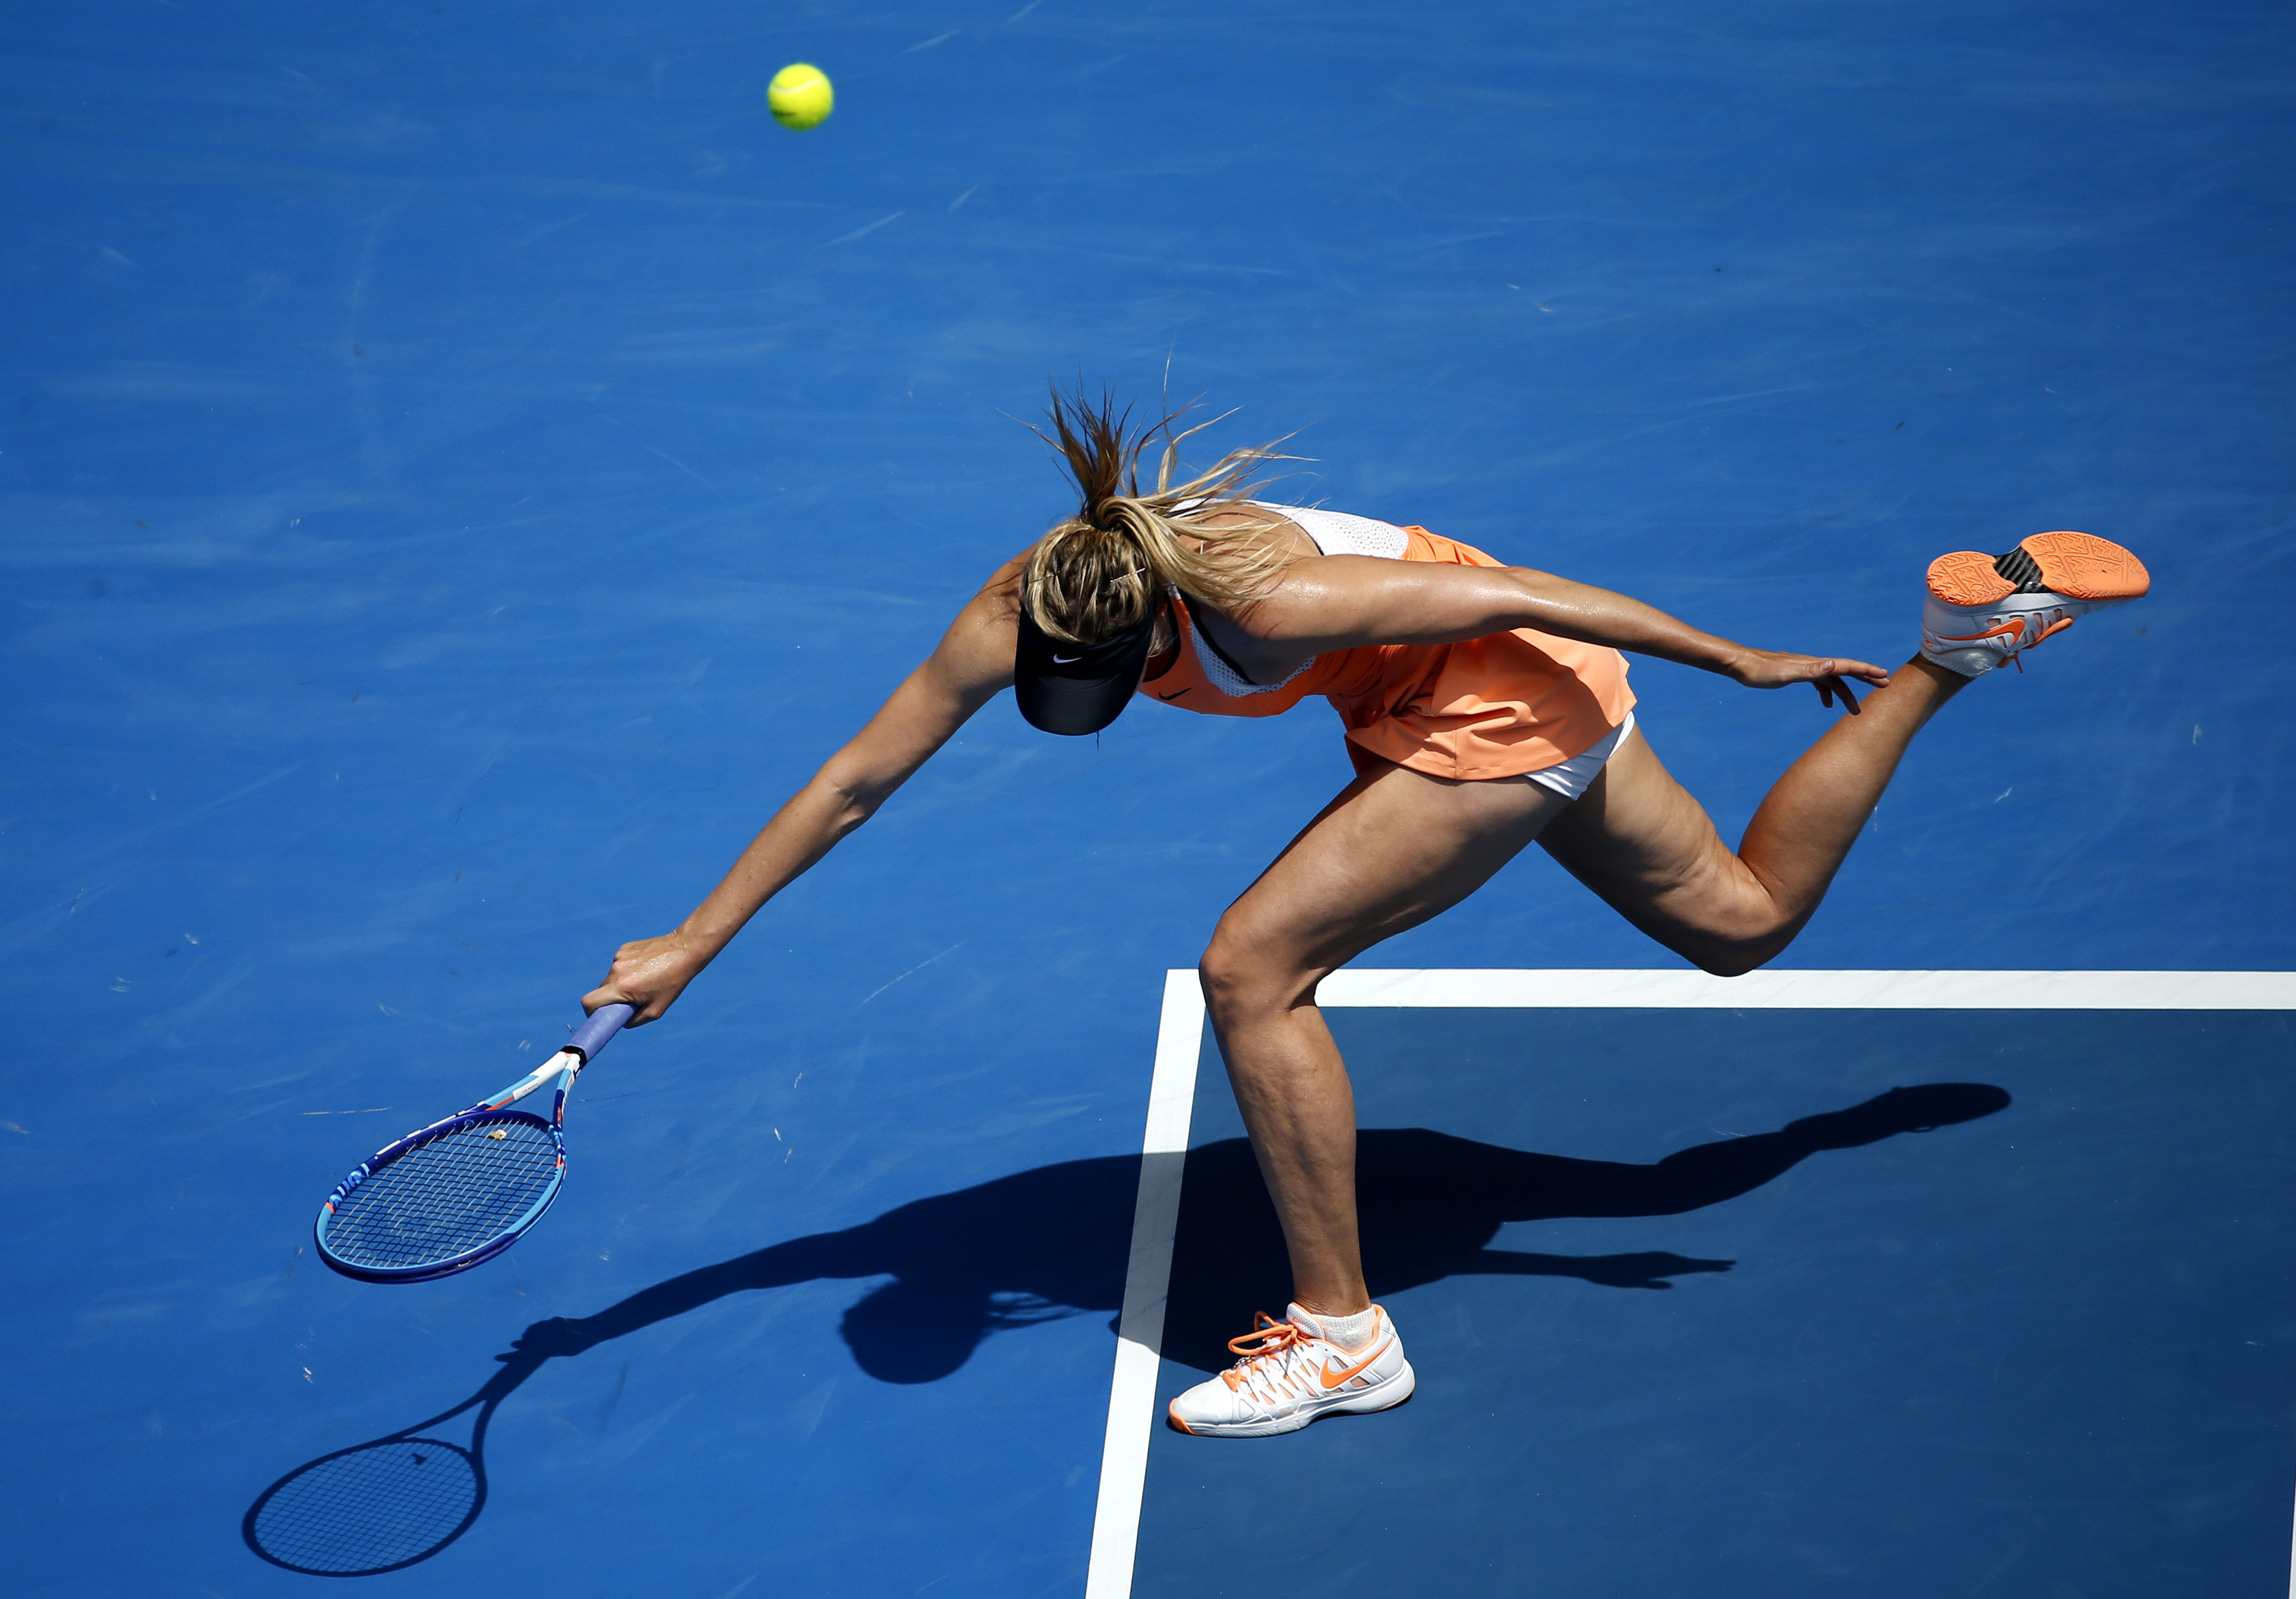 Maria Sharapova of Russia fails to return a shot to Serena Williams of the United States during their quarterfinal match at the Australian Open tennis championships in Melbourne, Australia, Tuesday, Jan. 26, 2016.(AP Photo/Vincent Thian)